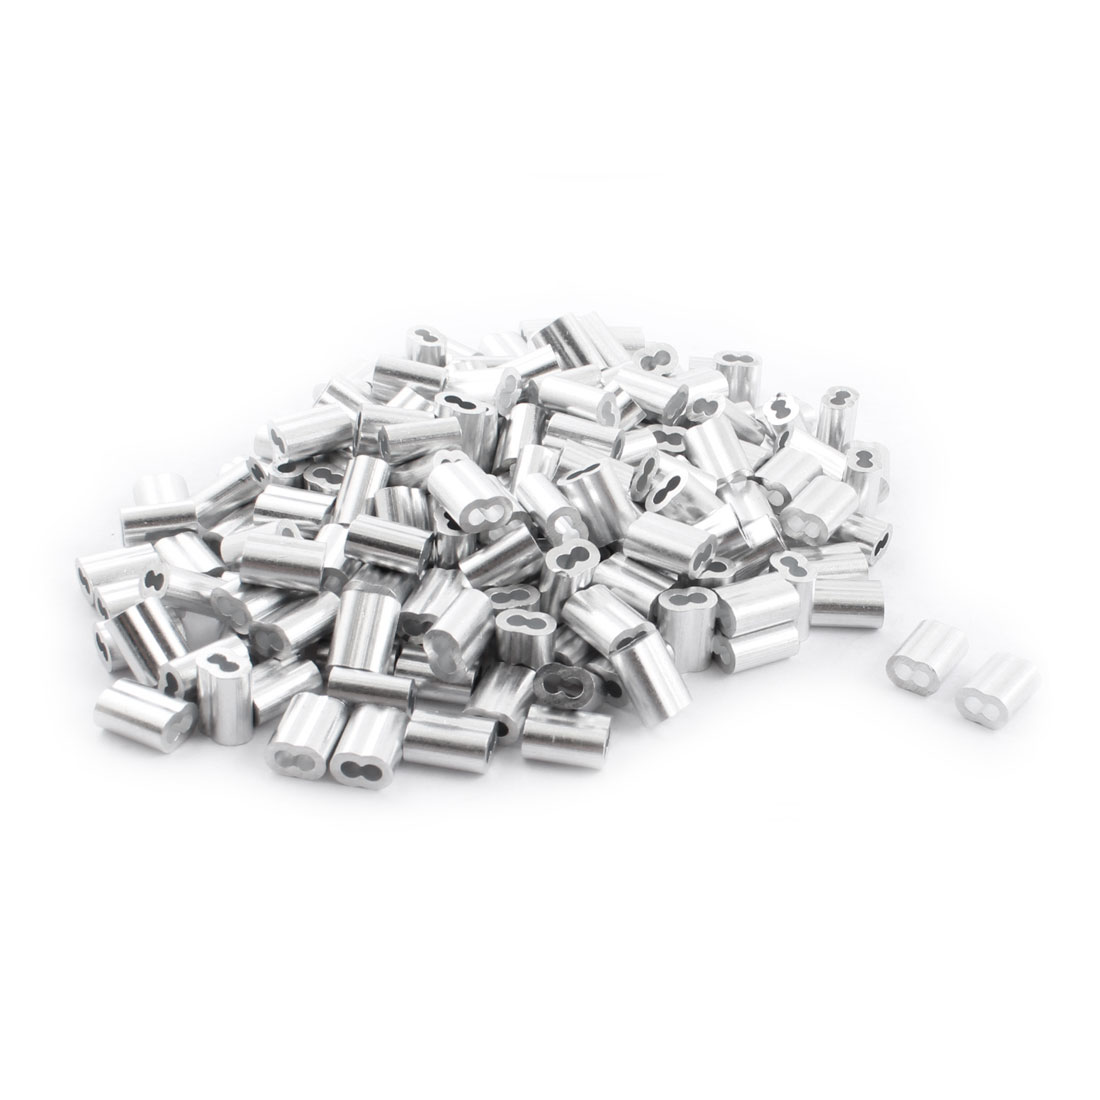 "250Pcs 1/8""x 1/2"" Aluminum Hourglass Ferrules Sleeve Crimp for 2.5mm Wire Rope"